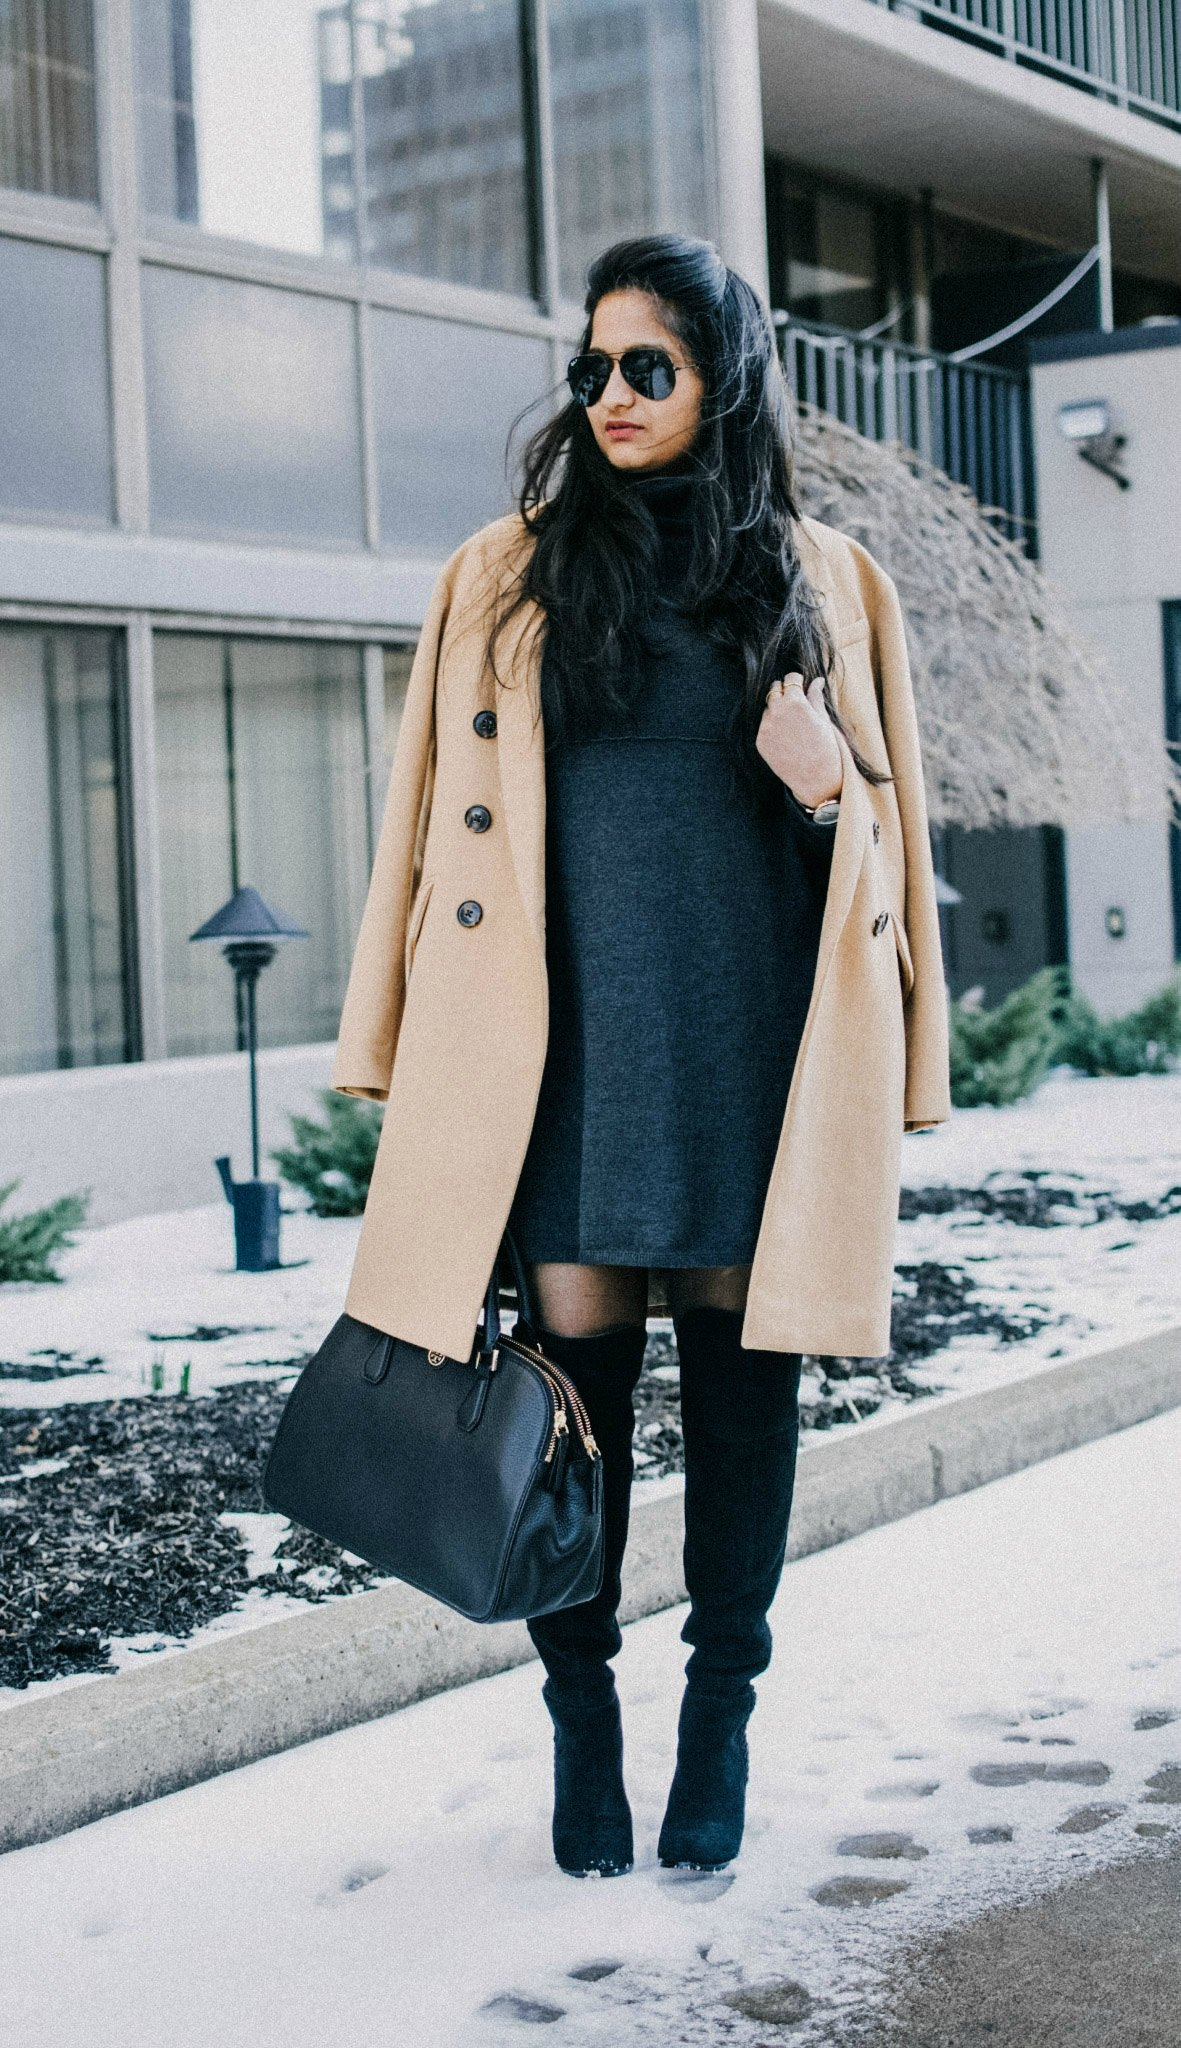 sweater dress with over the knee boots | dressy and chic thanksgiving ideas-2| 13 Cozy and Cute Thanksgiving outfit ideas featured by top US modest fashion blog, Dreaming Loud